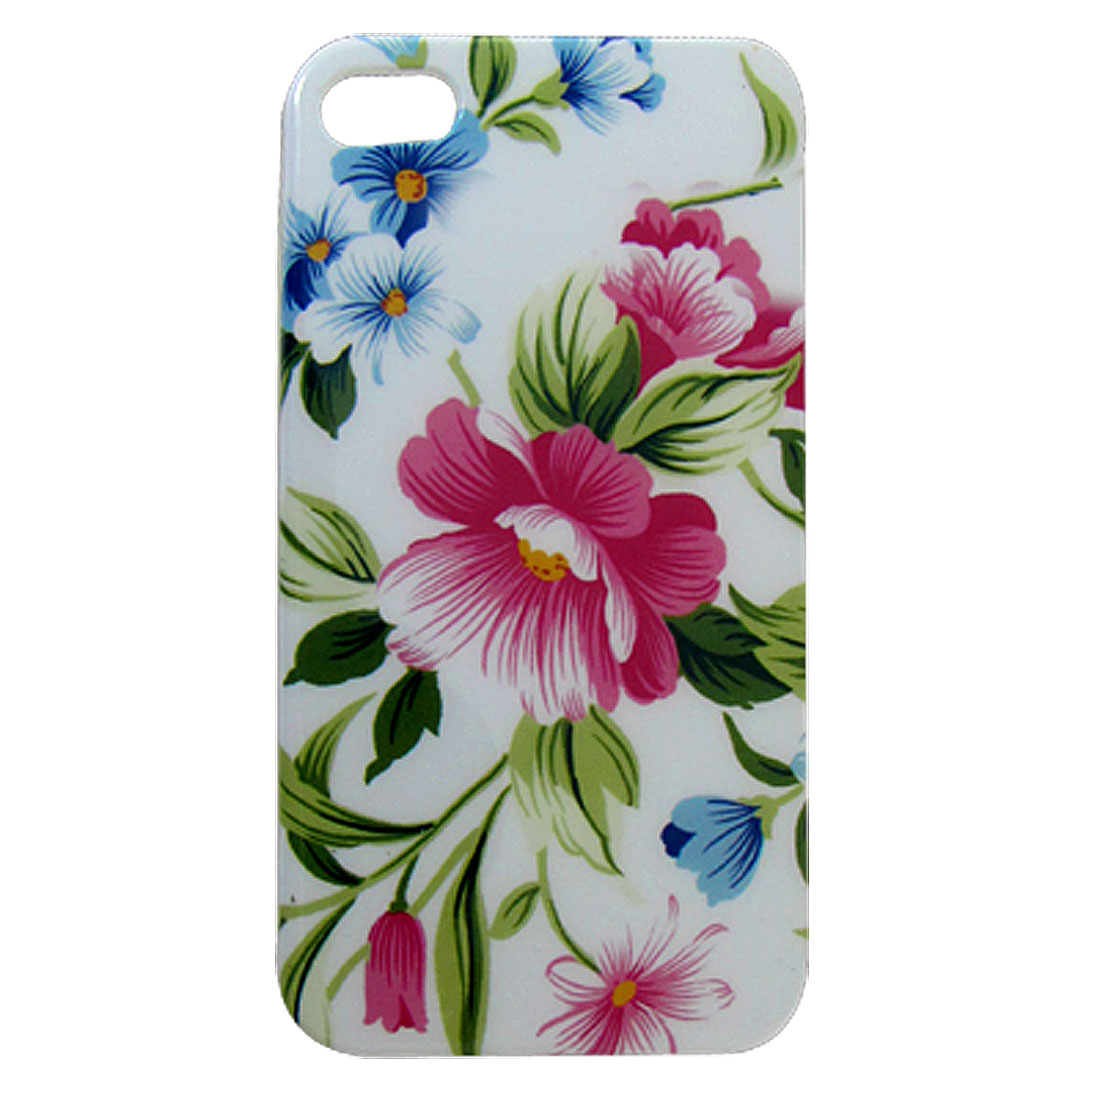 Protective Flower Leaves Print IMD Back Case White for iPhone 4 4G 4S